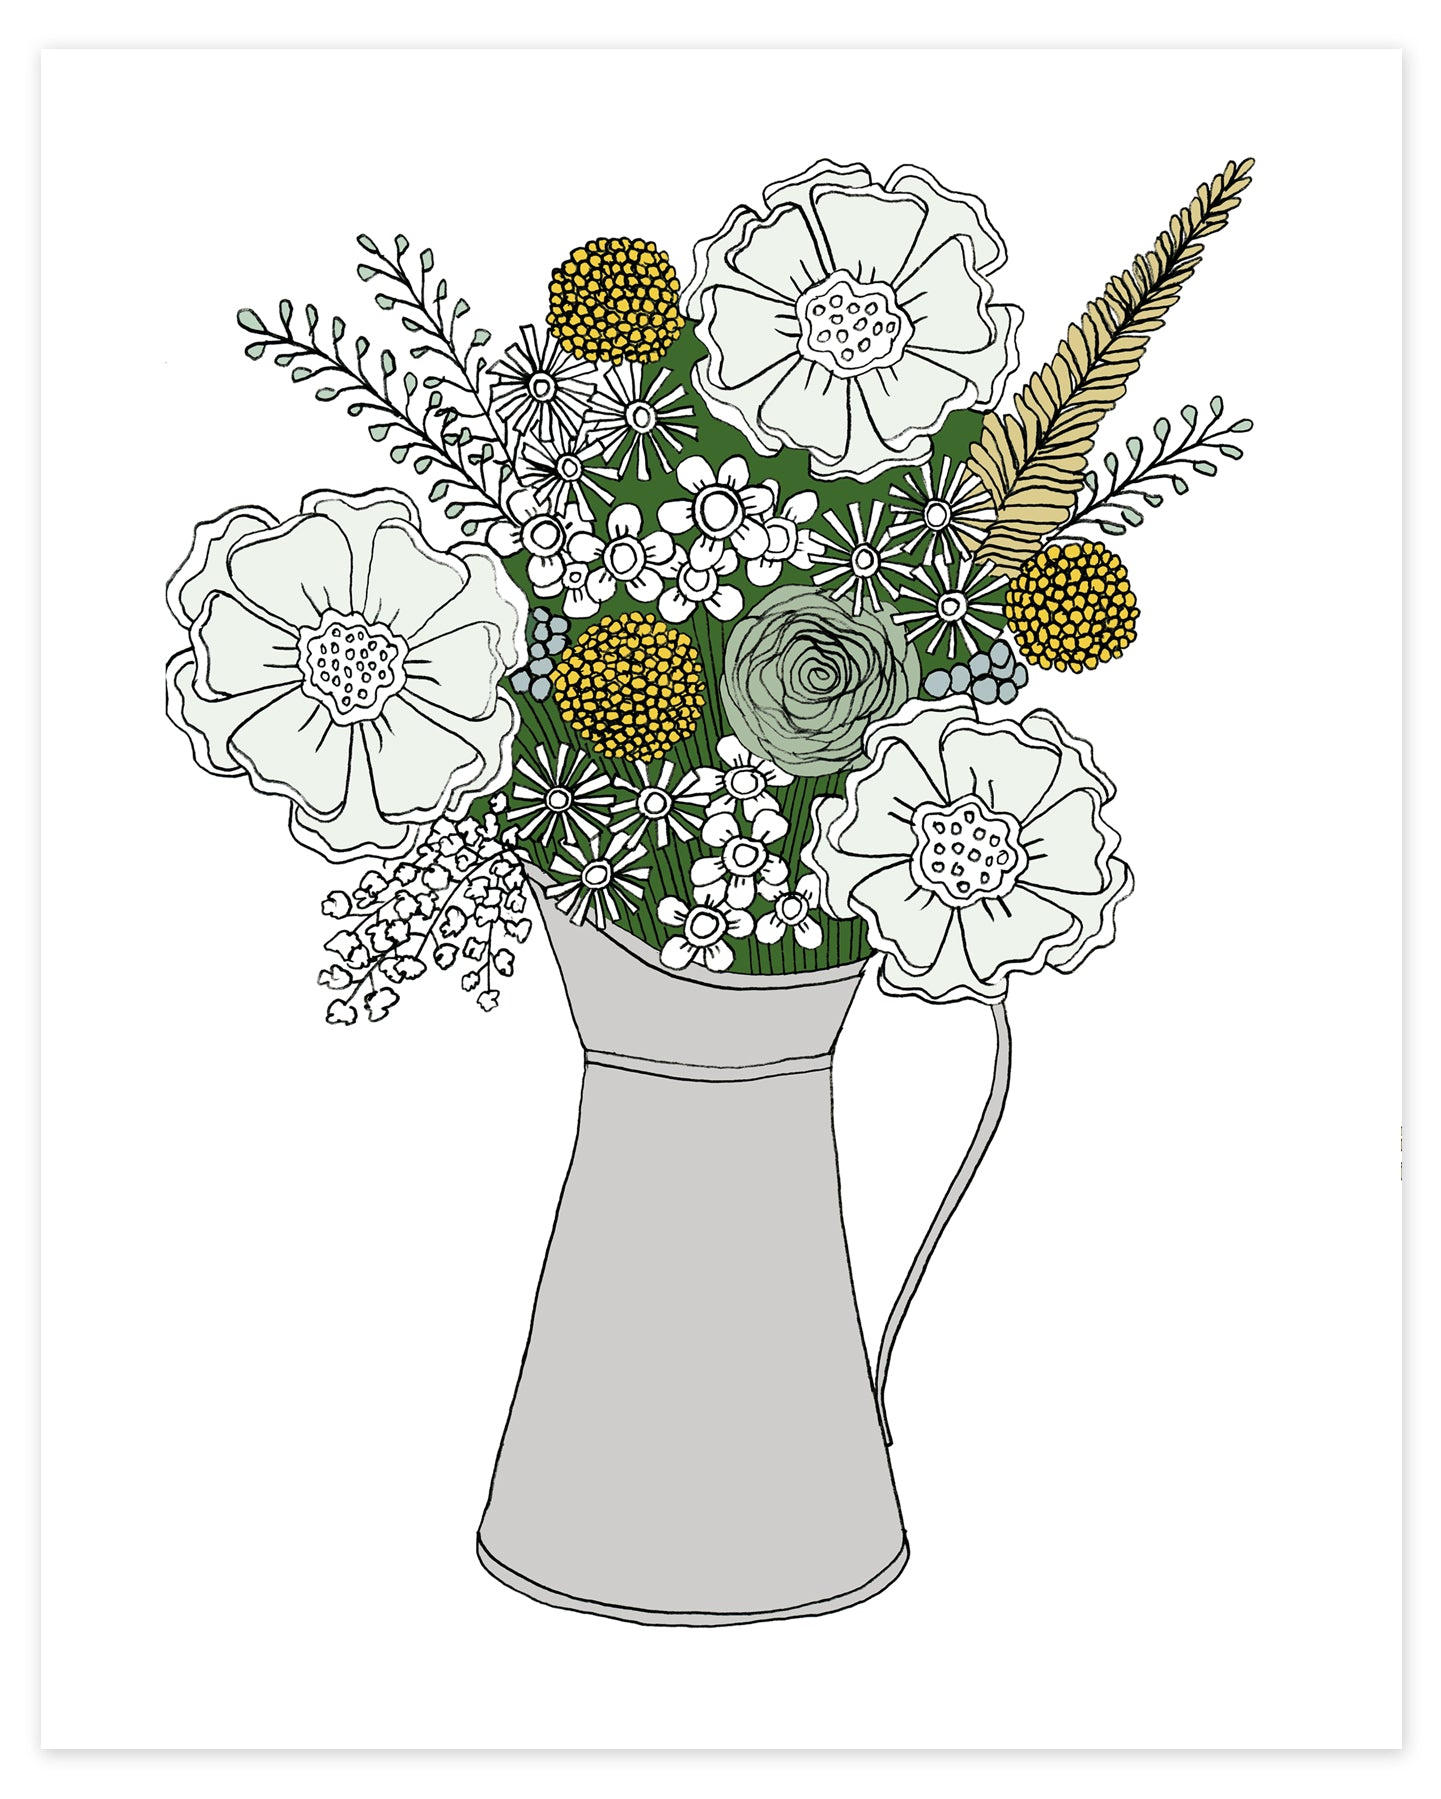 A print of a hand-drawn illustration of a bouquet of flowers in greys, greens and golds in a silver metal pitcher on a white background.